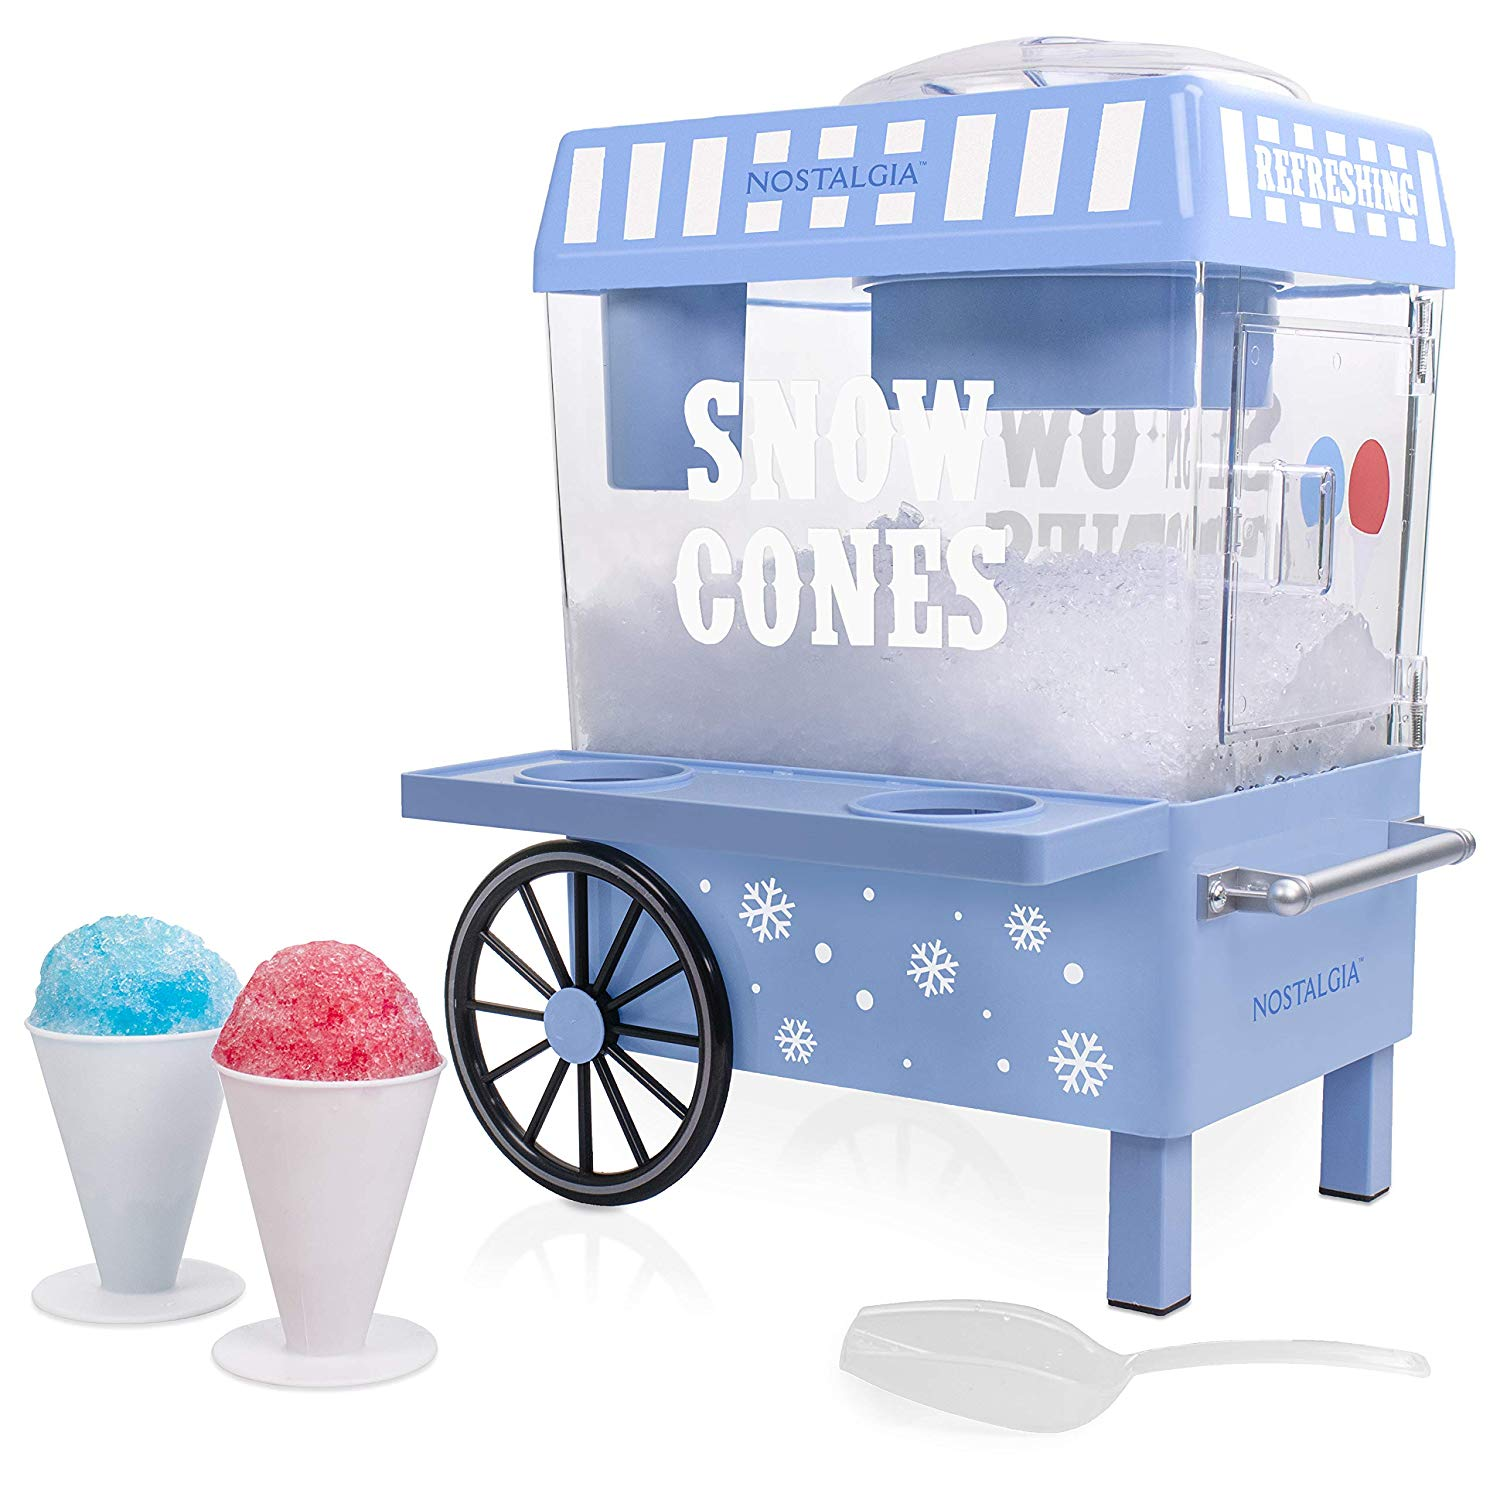 Nostalgia SCM525BL Vintage Countertop Snow Cone Maker Makes 20 Icy Treats